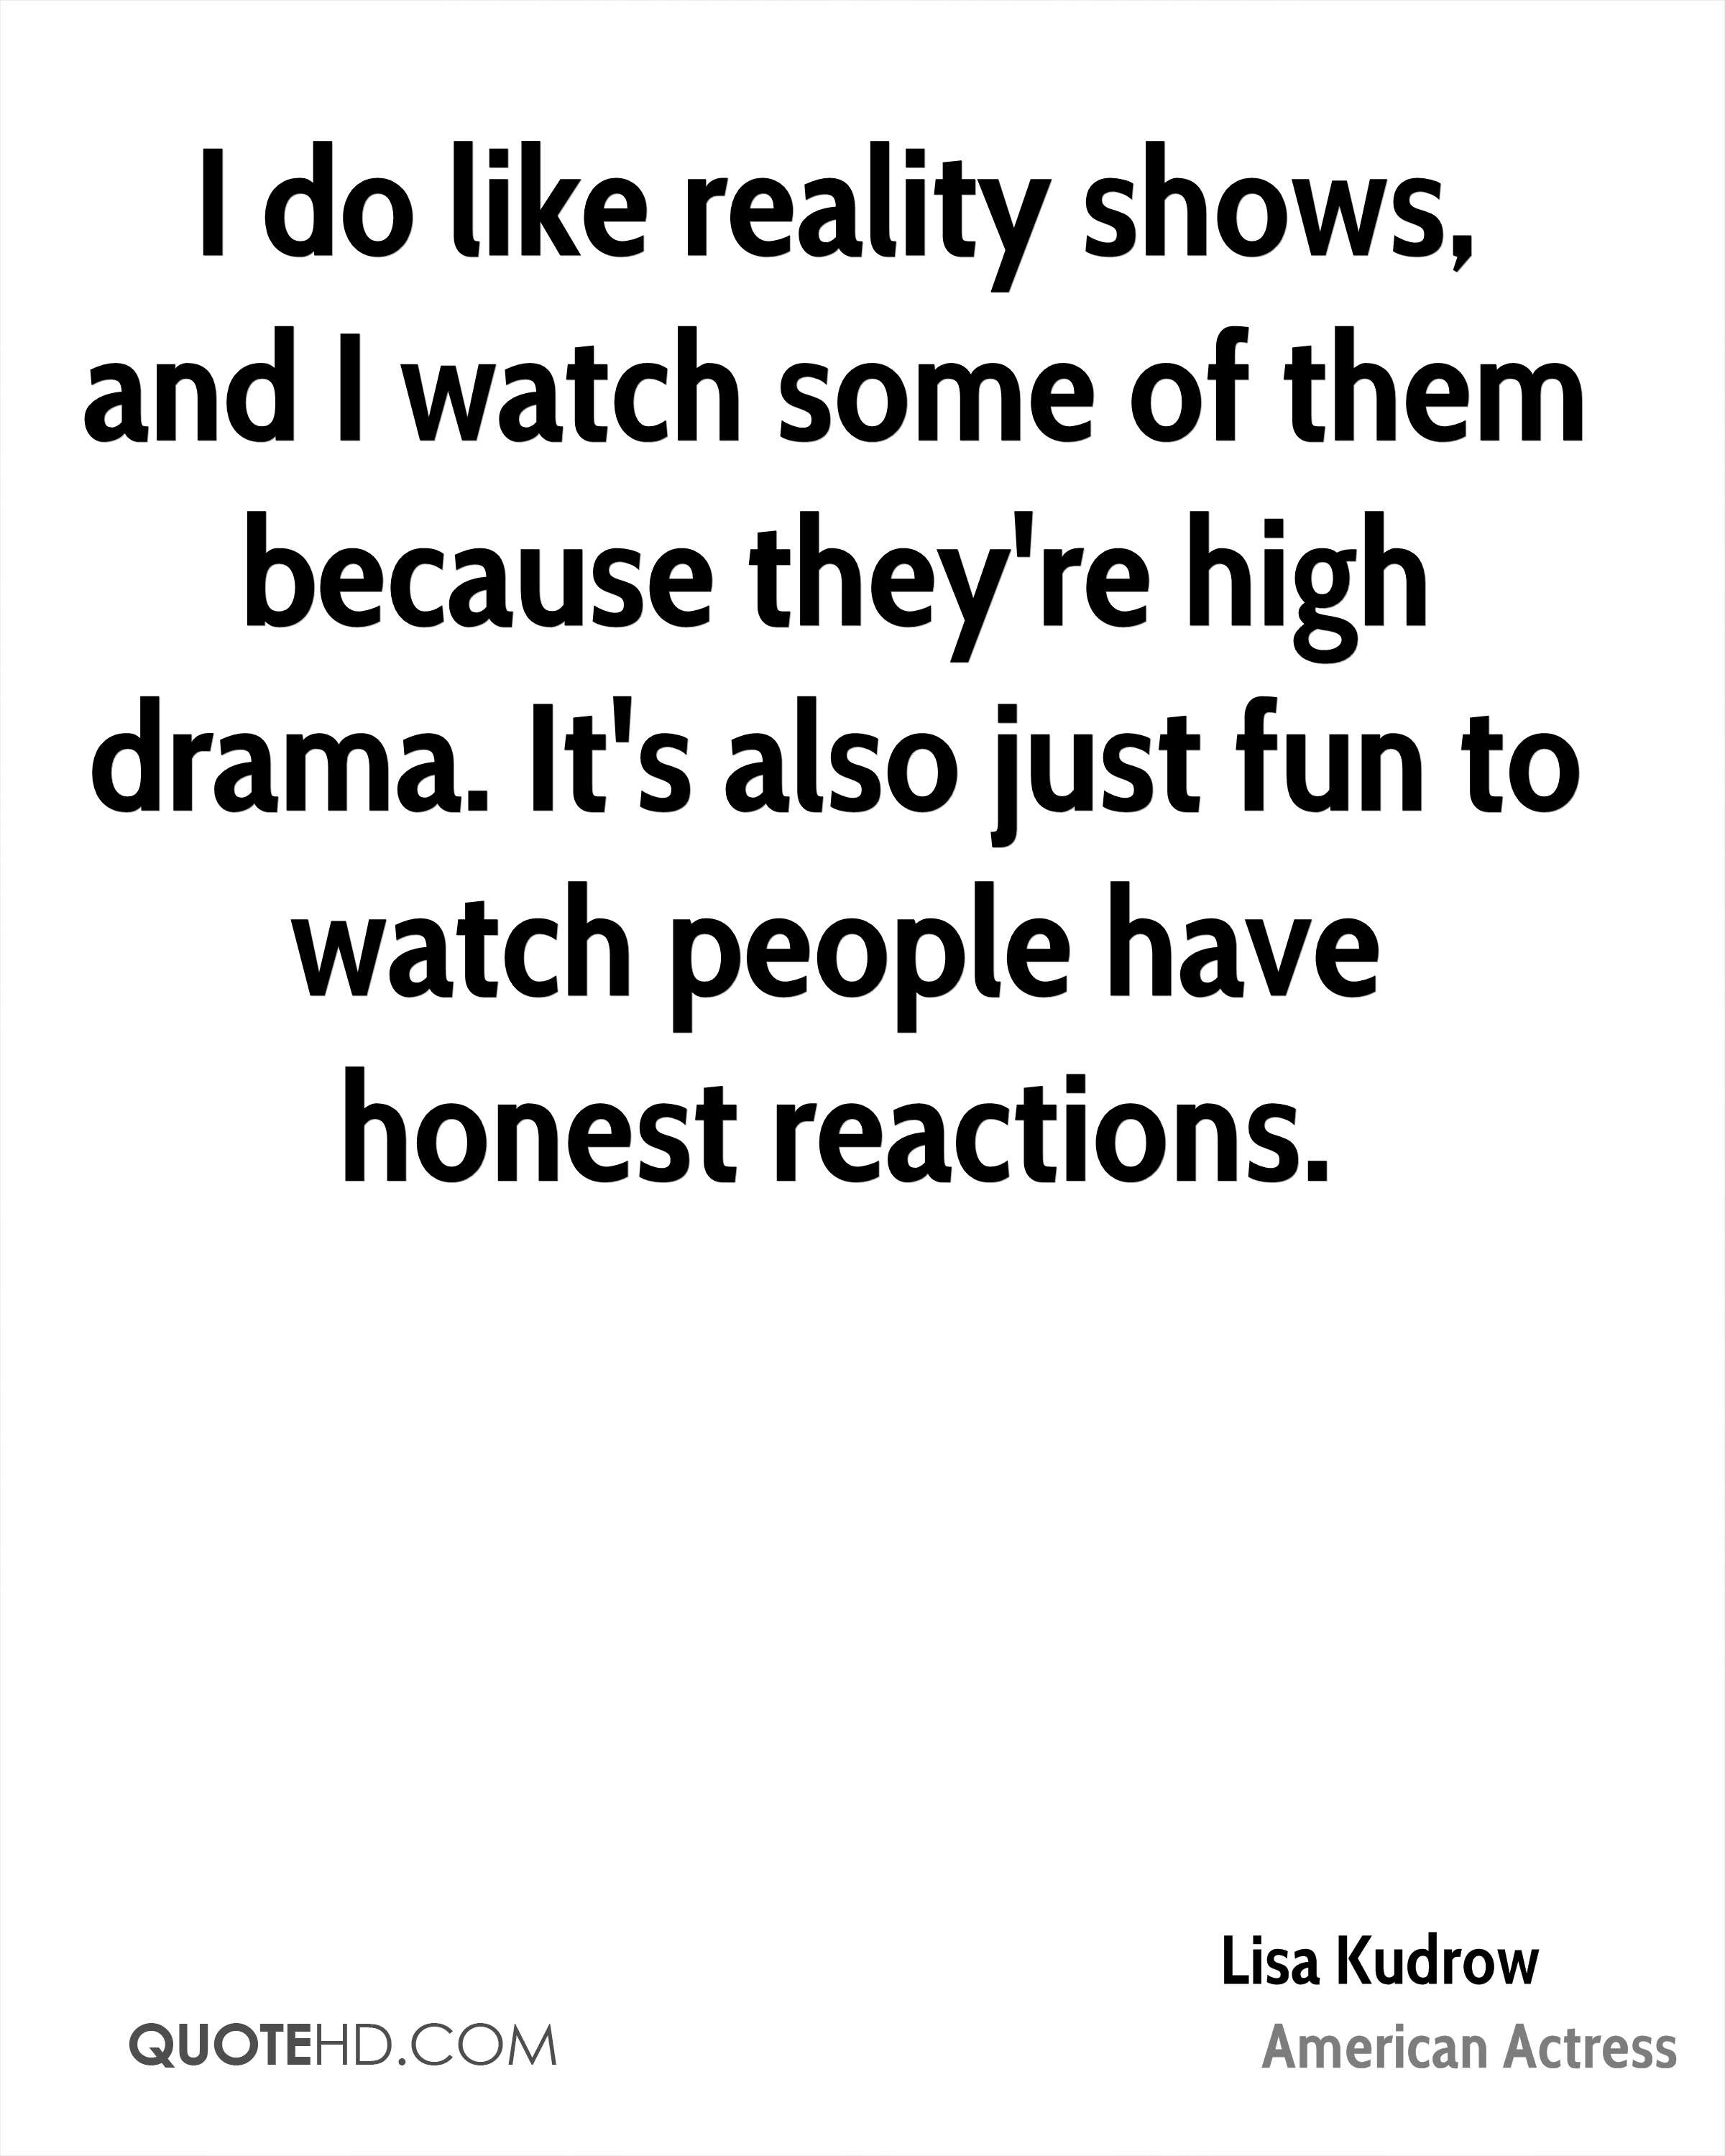 I do like reality shows, and I watch some of them because they're high drama. It's also just fun to watch people have honest reactions.